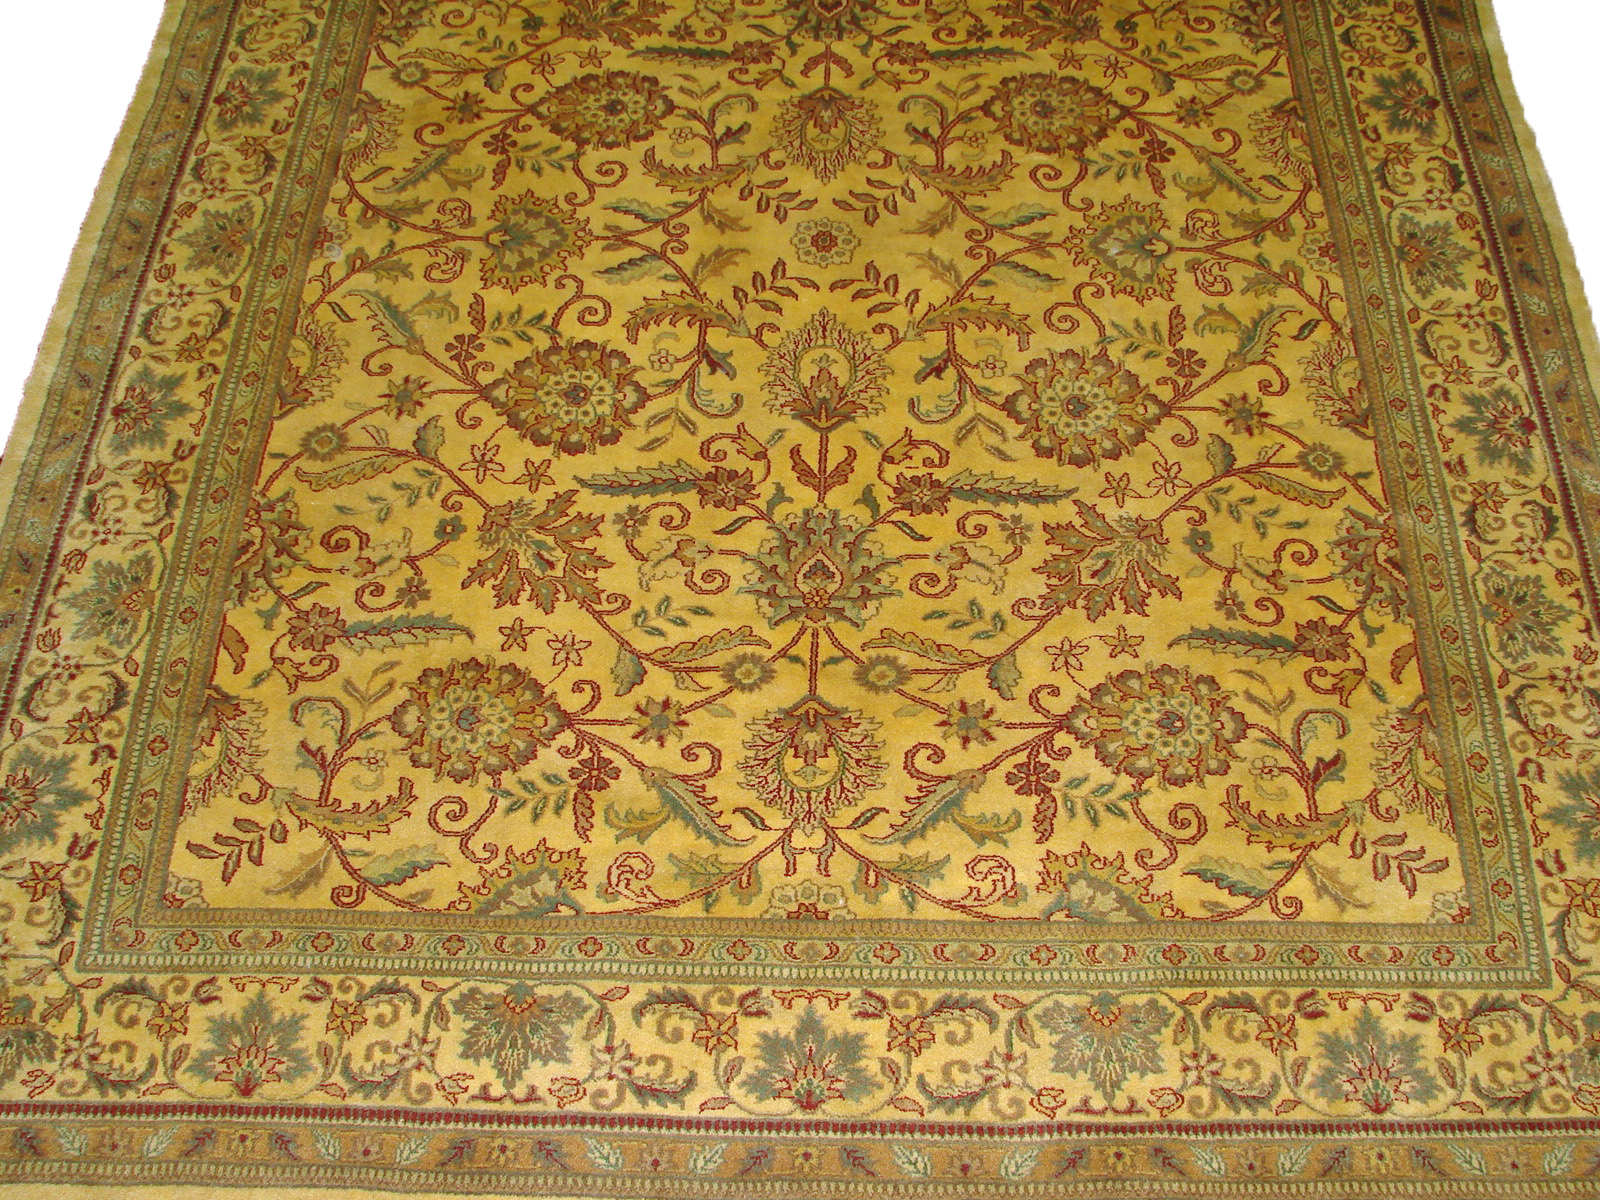 Clearance & Discount Rugs-NARAYAN B-Oriental Designer Rugs